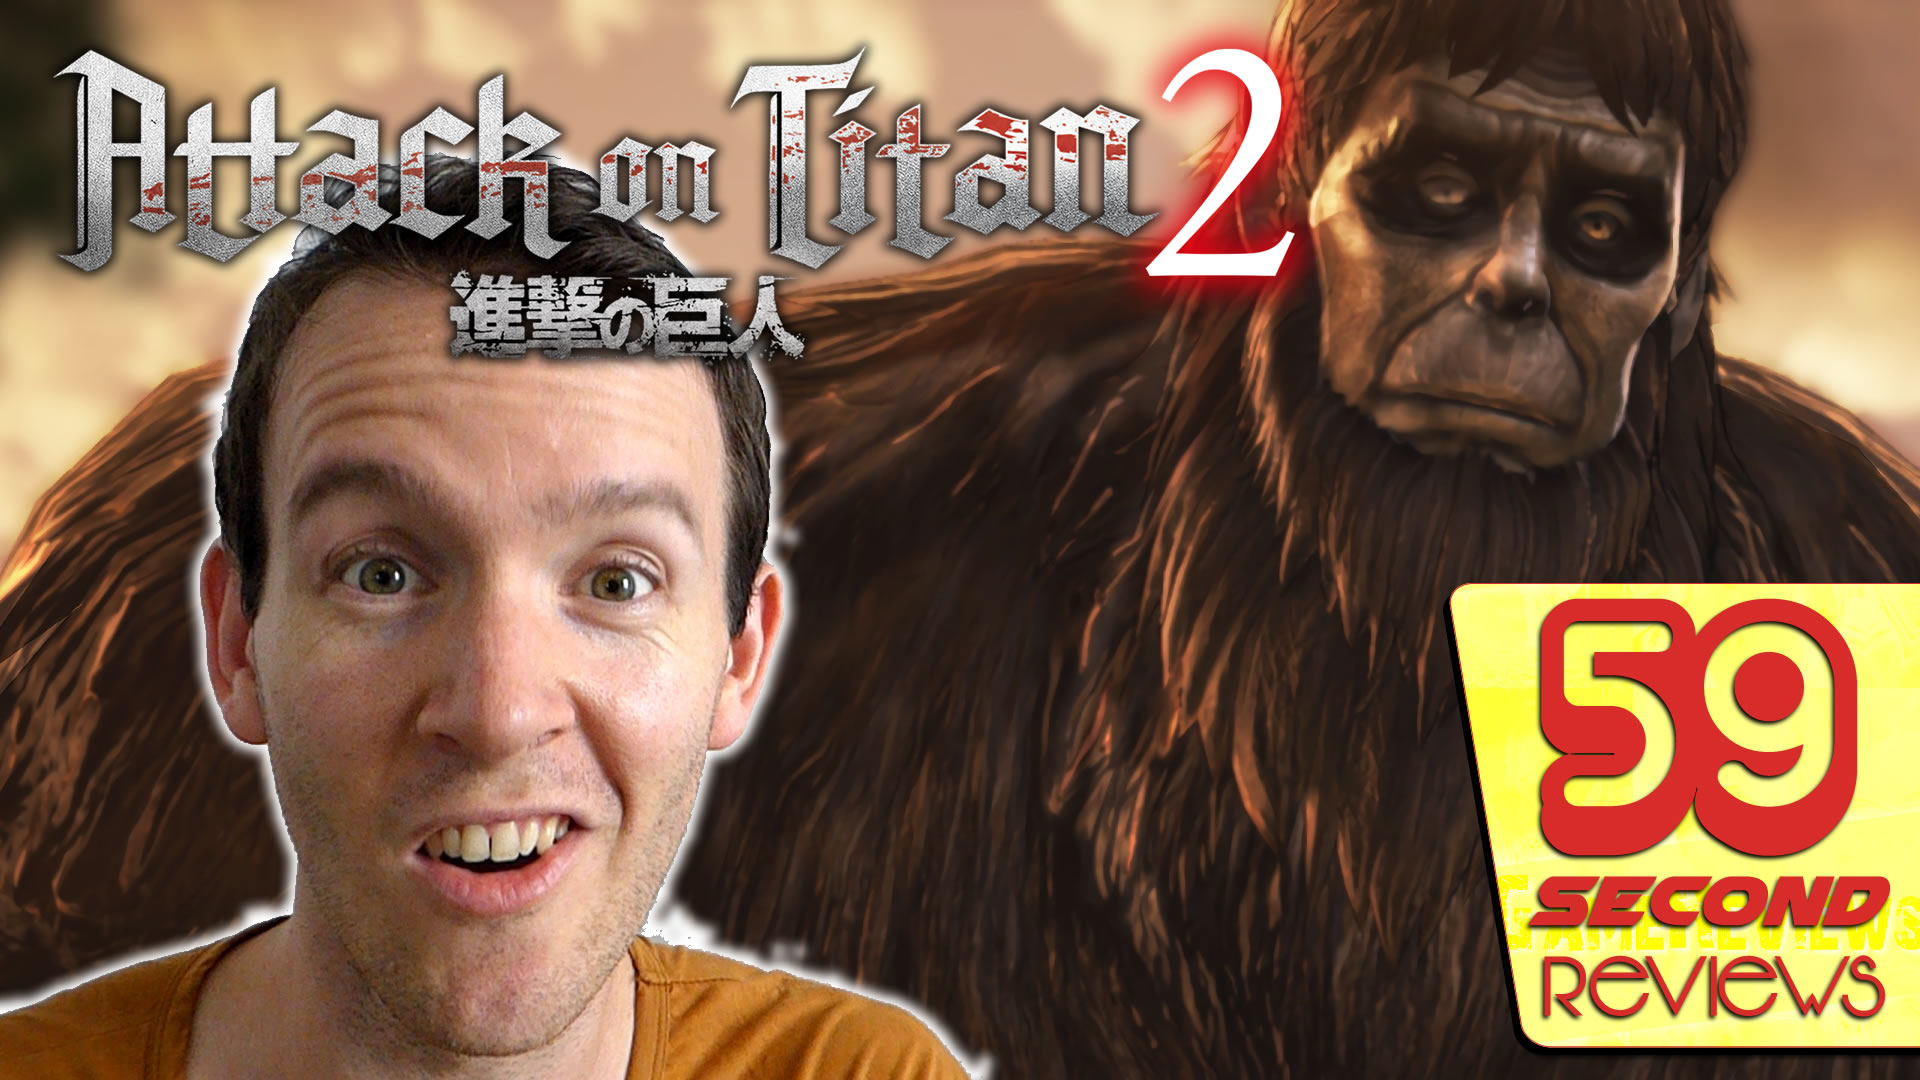 Attack on Titan 2 Game 59 Second Review